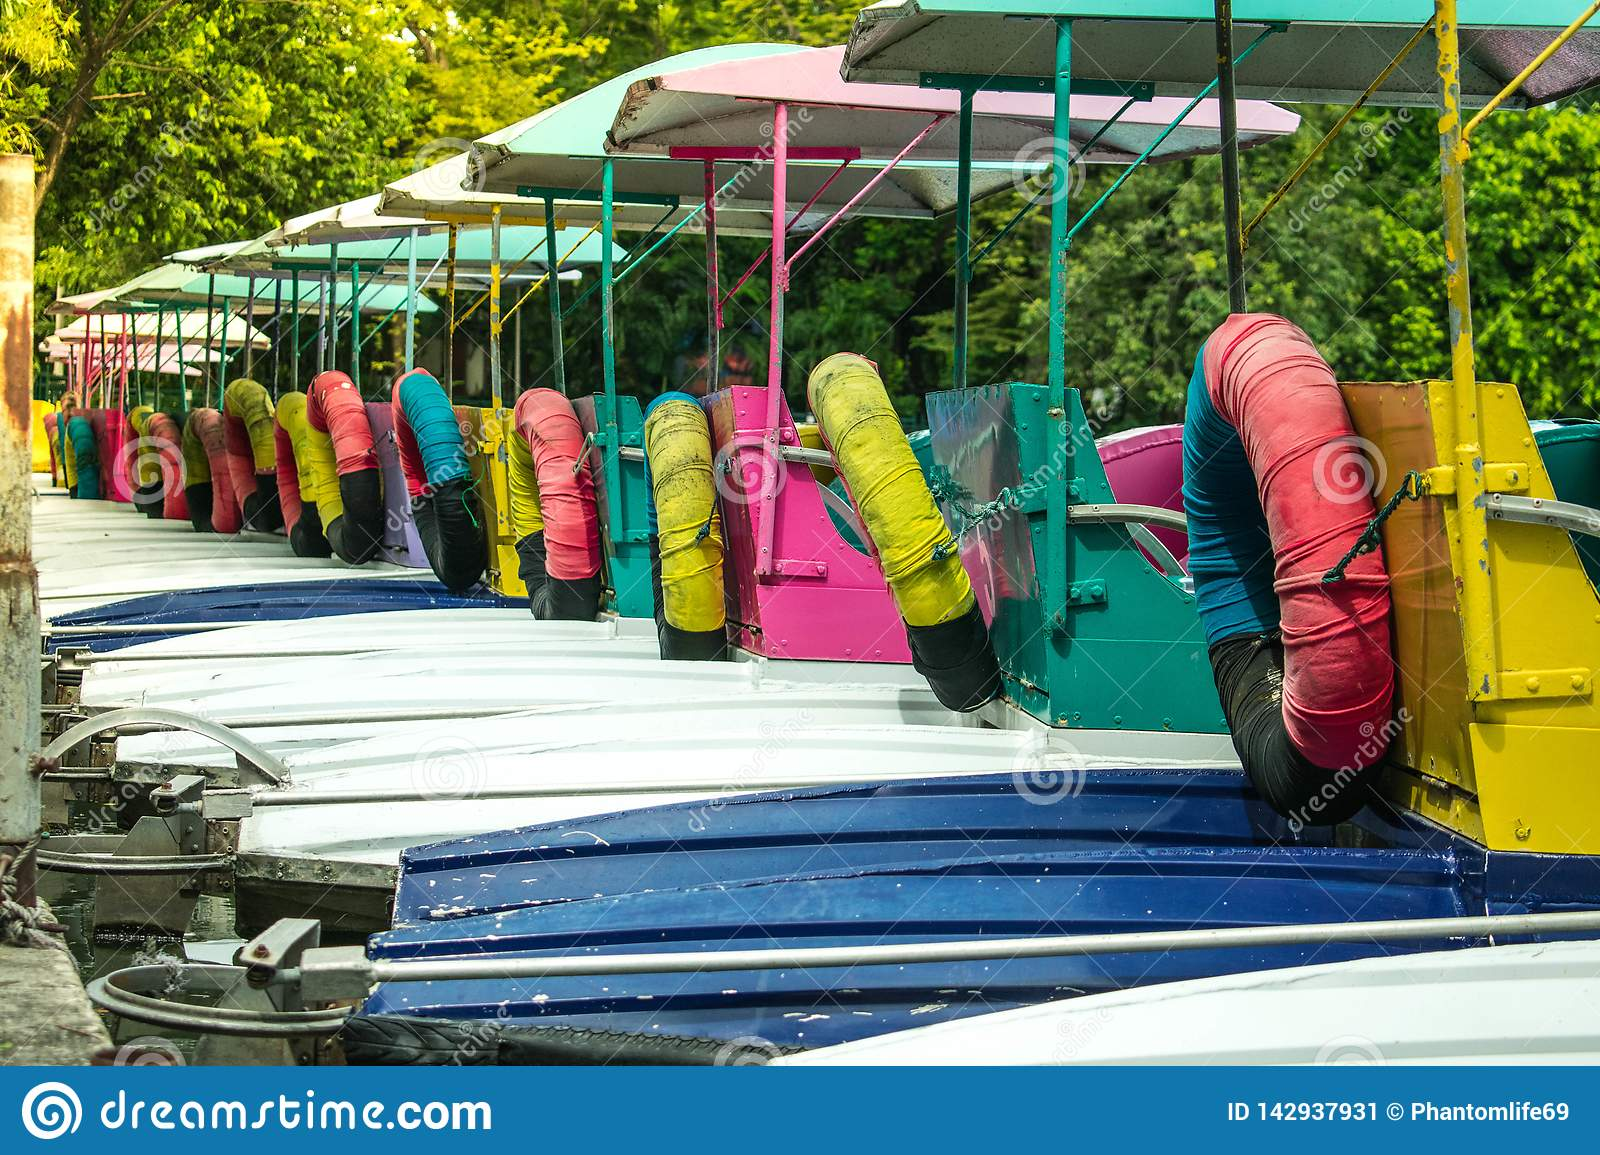 Colorful pedal boats anchor at pier in park.